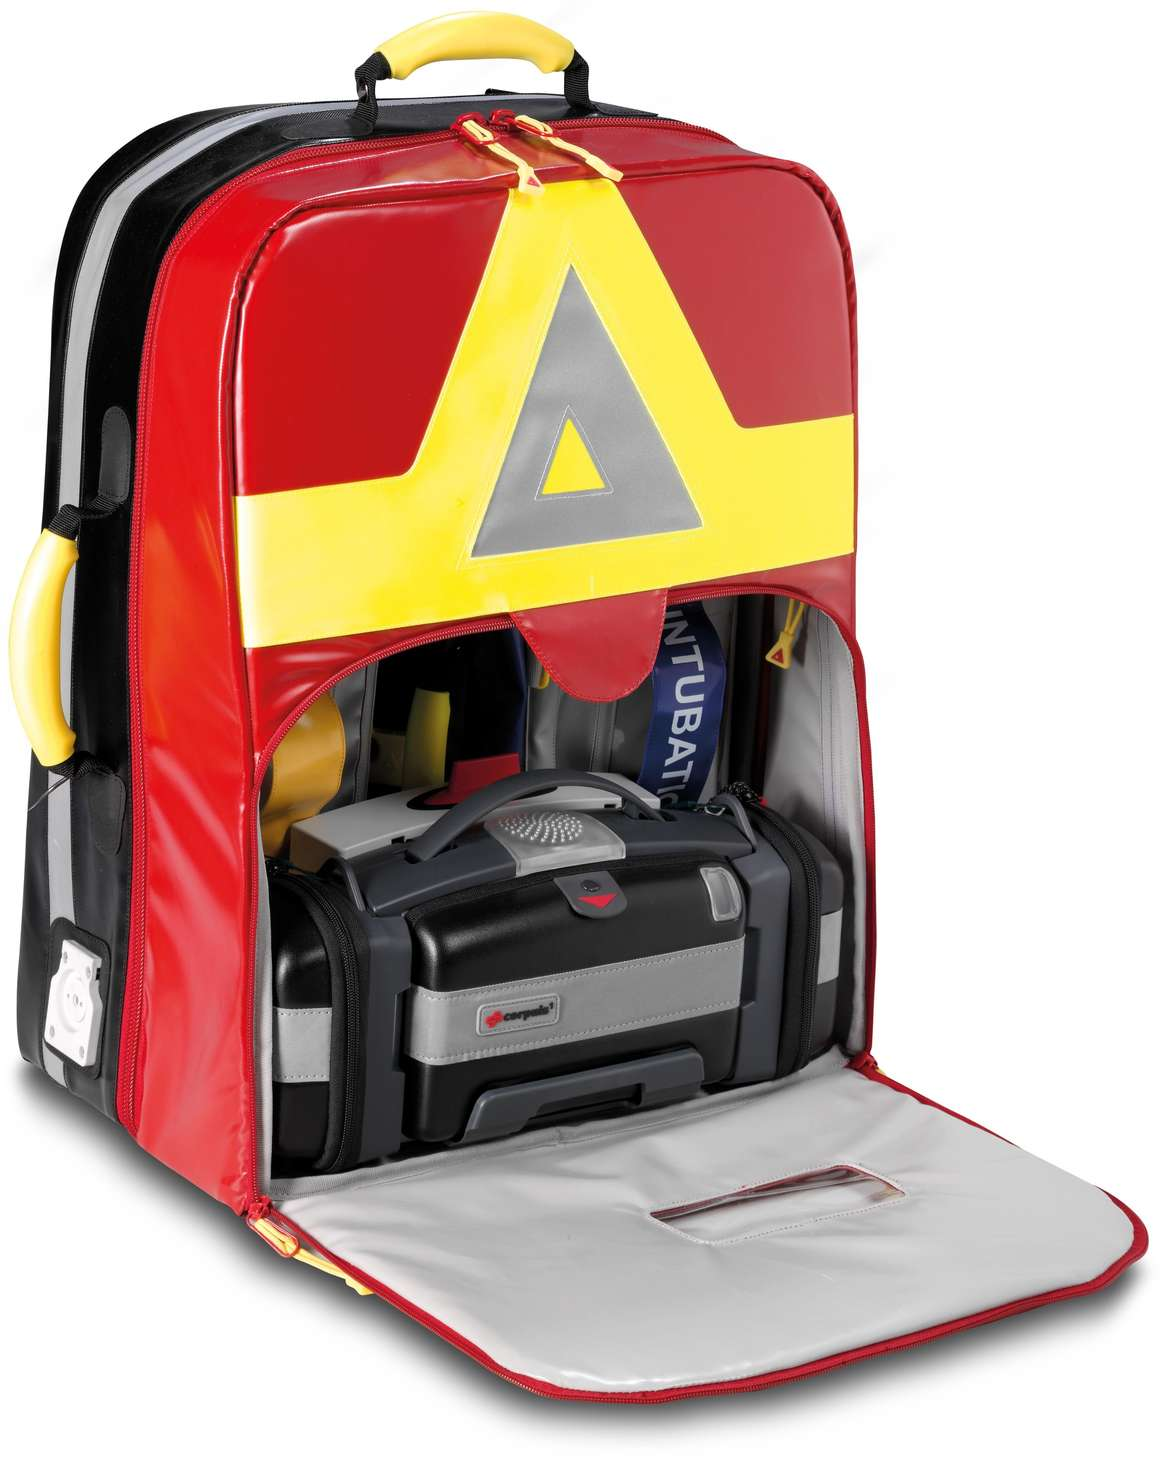 Emergency Backpack ALS (Advanced Life Support)